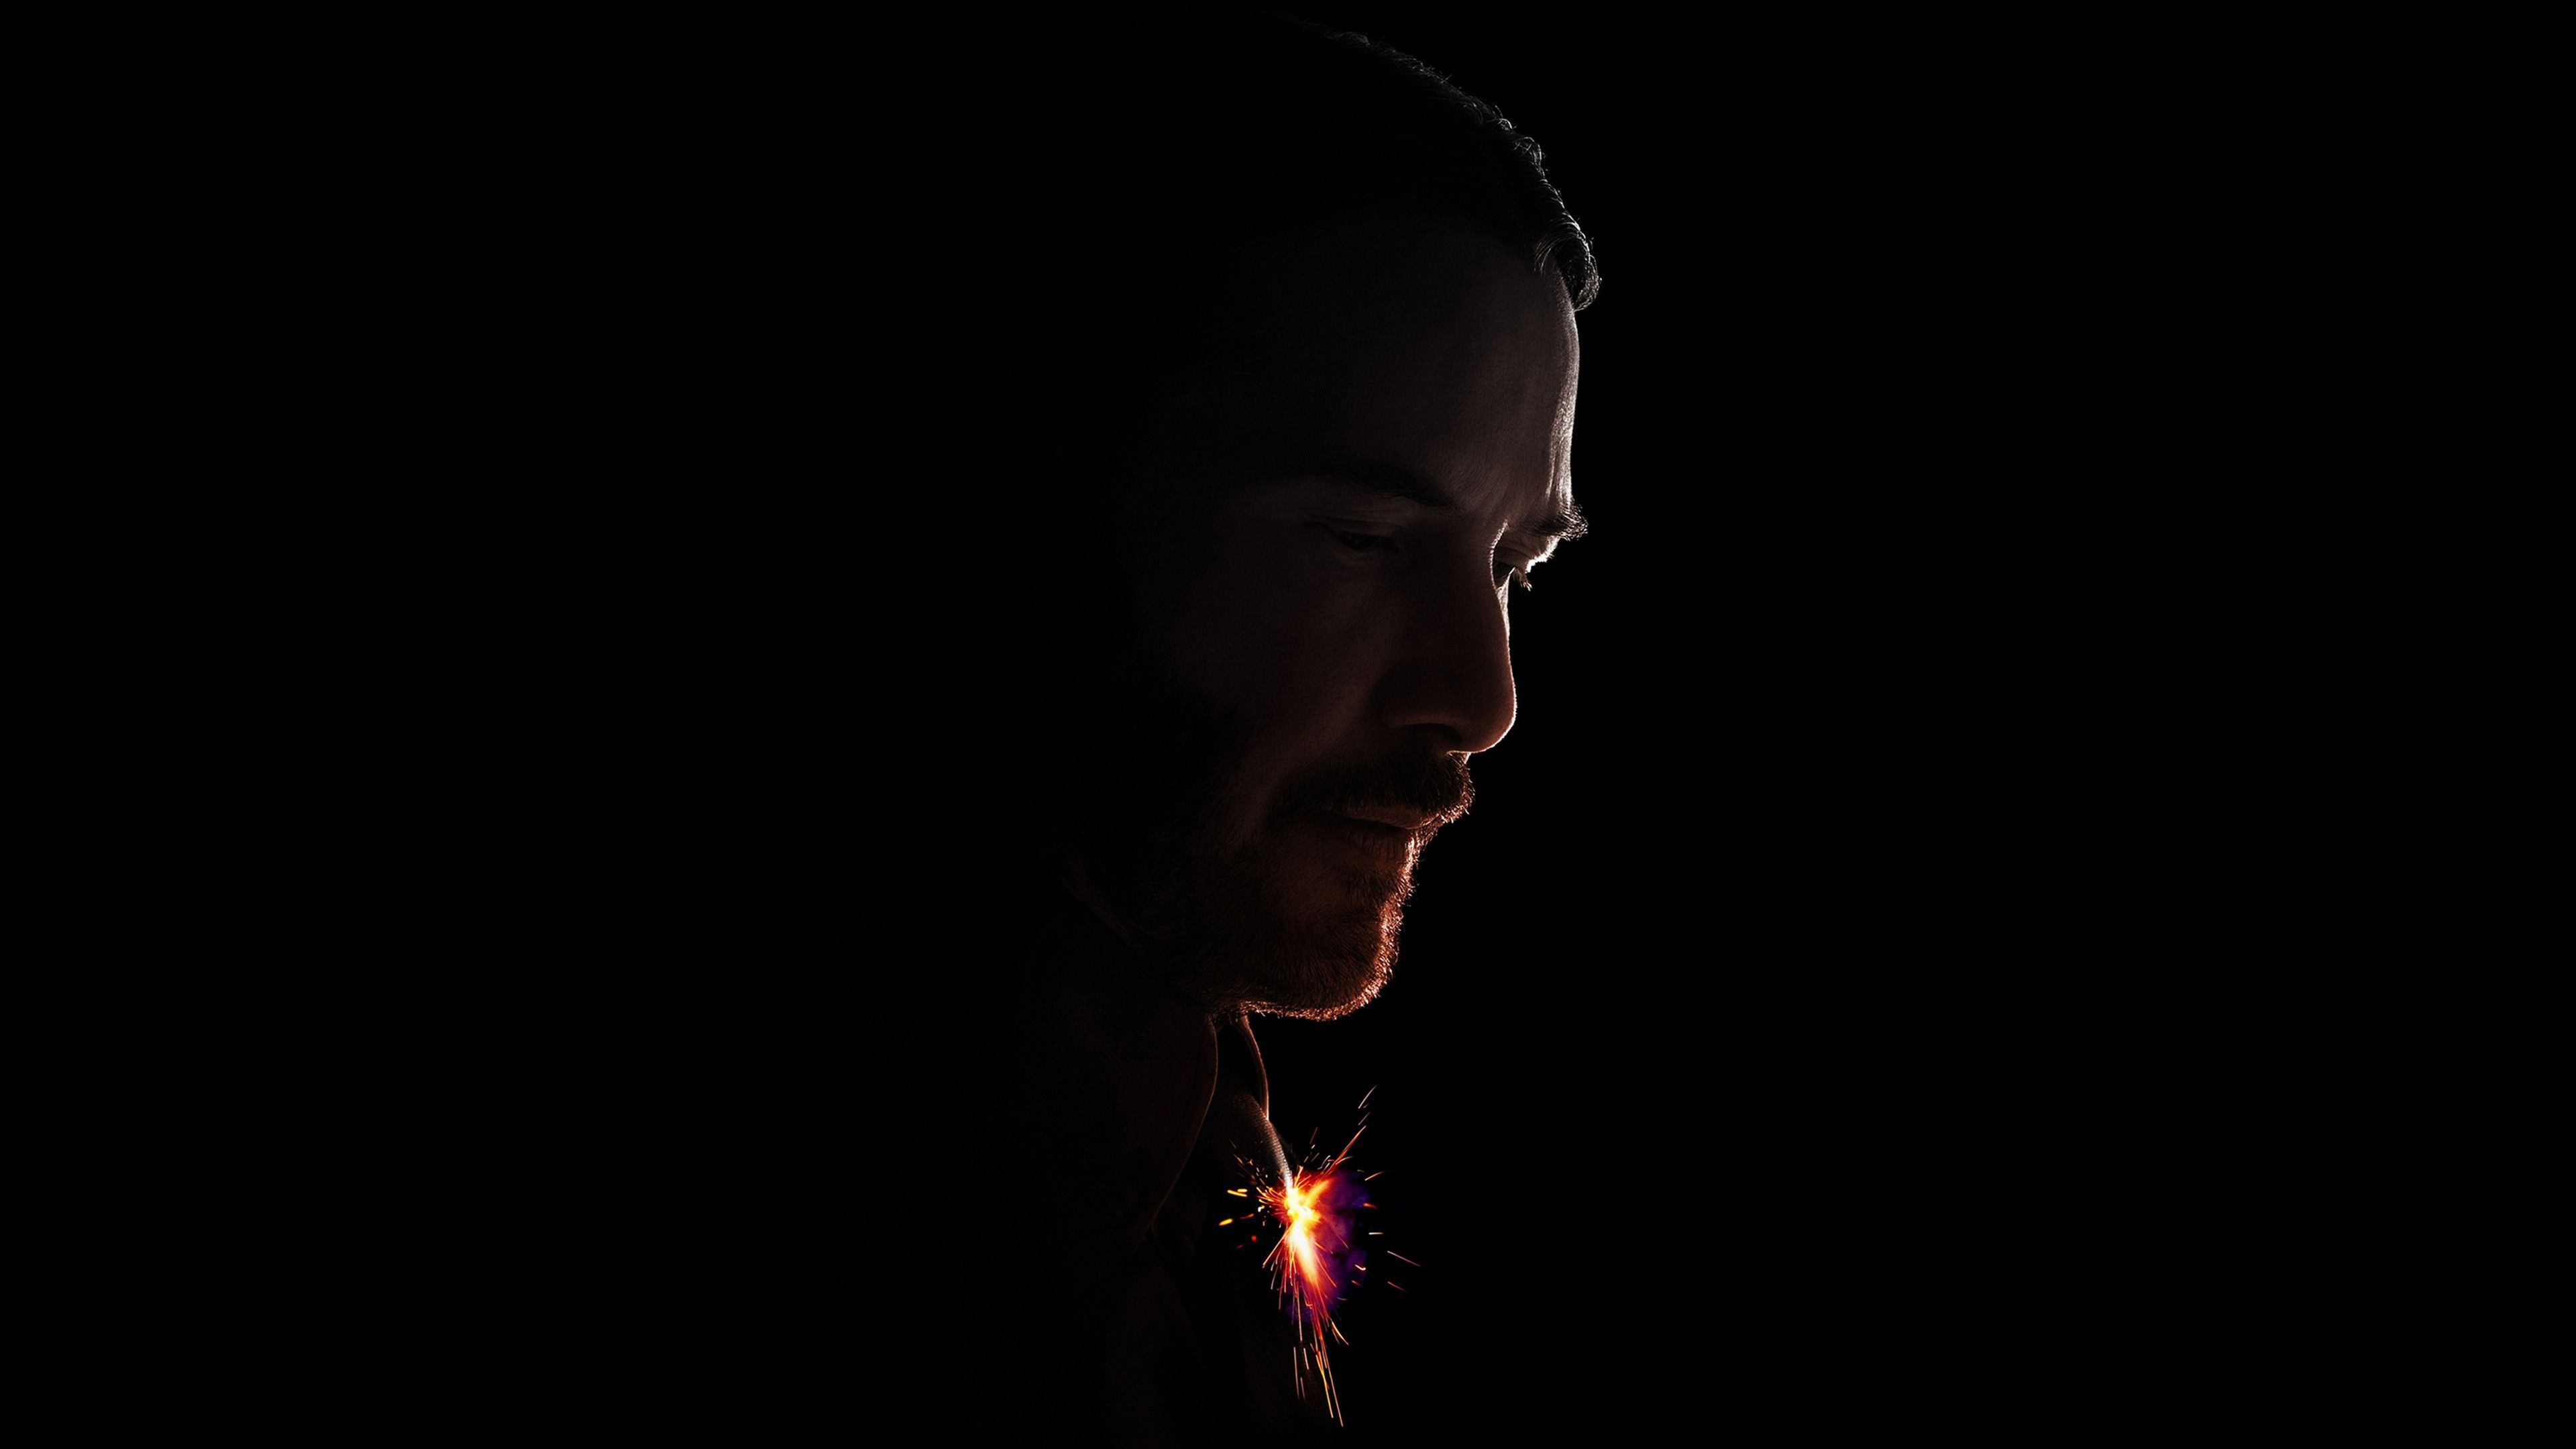 John Wick Chapter 2 Wallpaper -Download best wallpapers here,Best